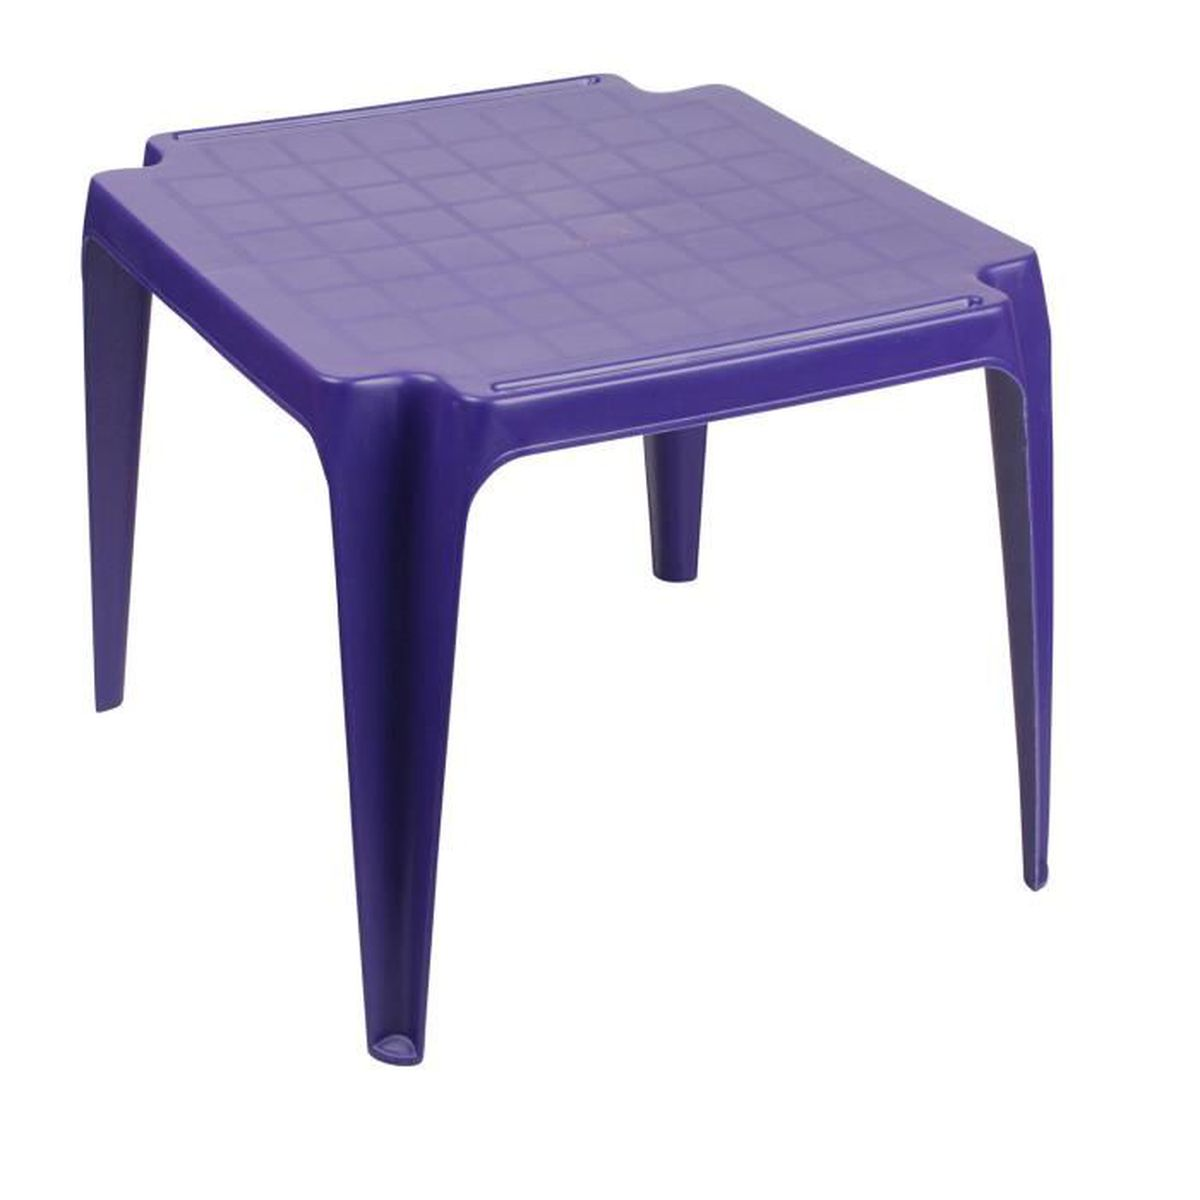 table de jardin violet achat vente pas cher cdiscount. Black Bedroom Furniture Sets. Home Design Ideas